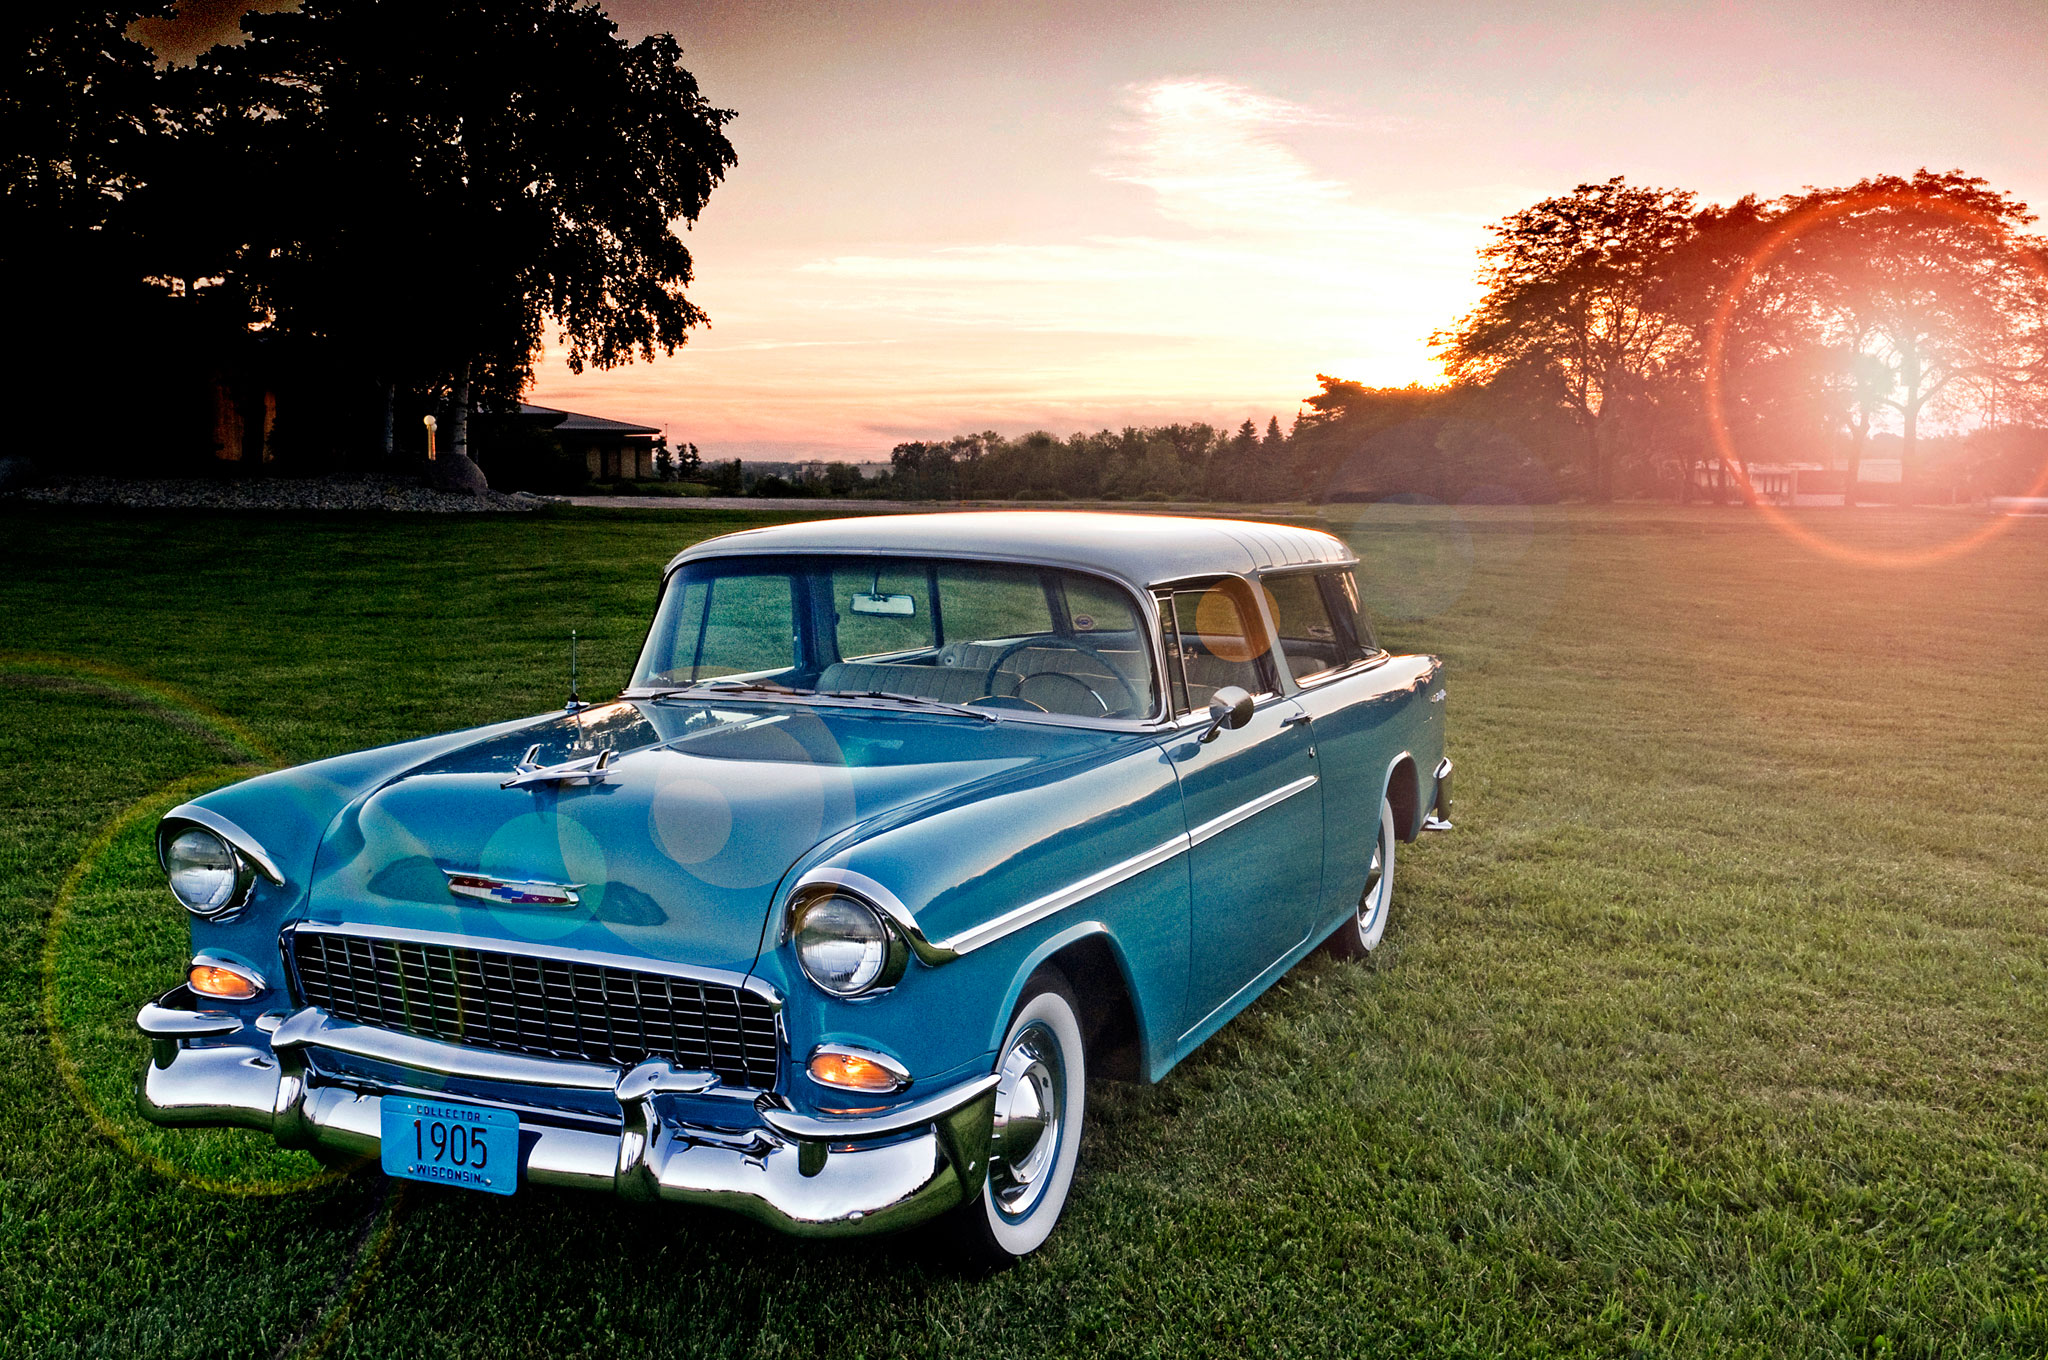 1955 1957 Chevrolet Nomad Front Left View1